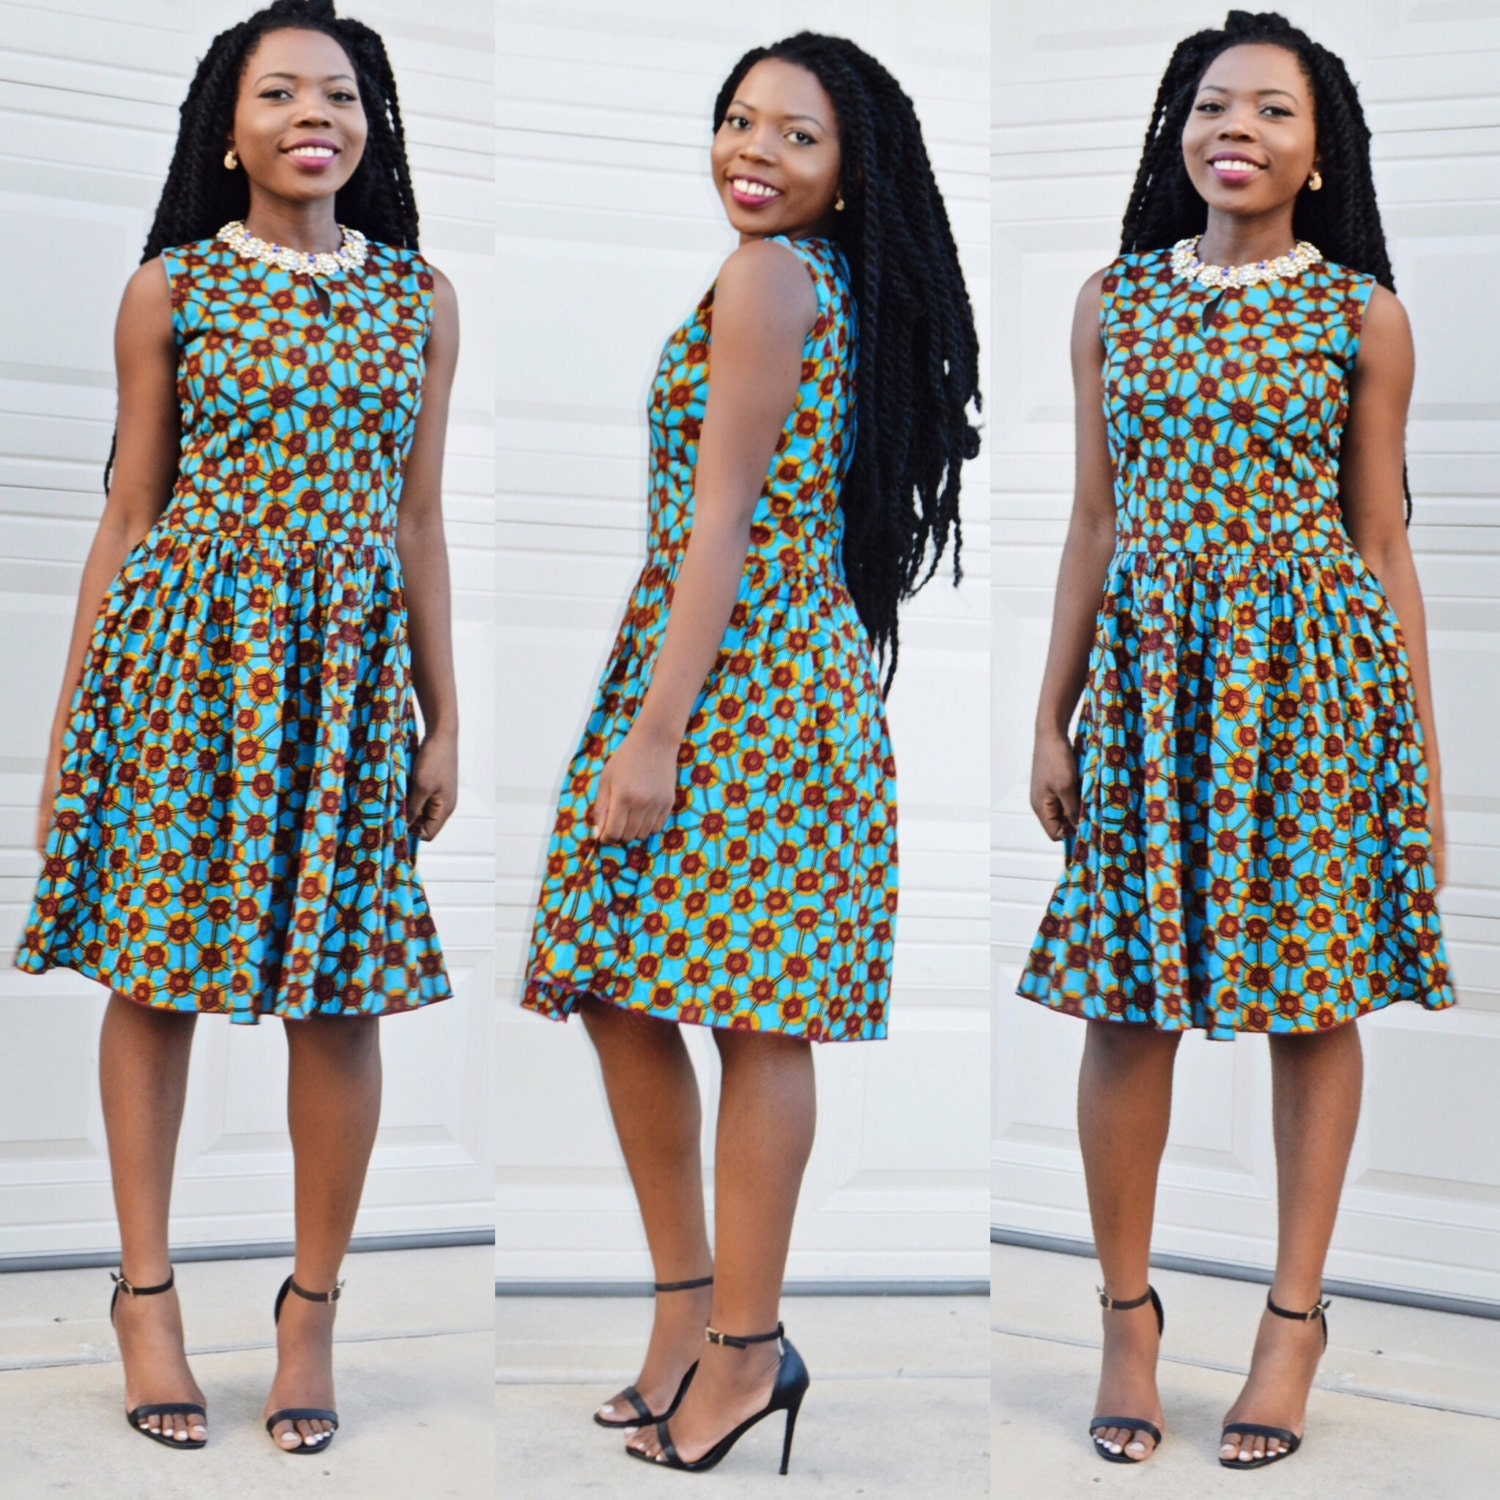 Short Cocktail Dresses with African Print Material